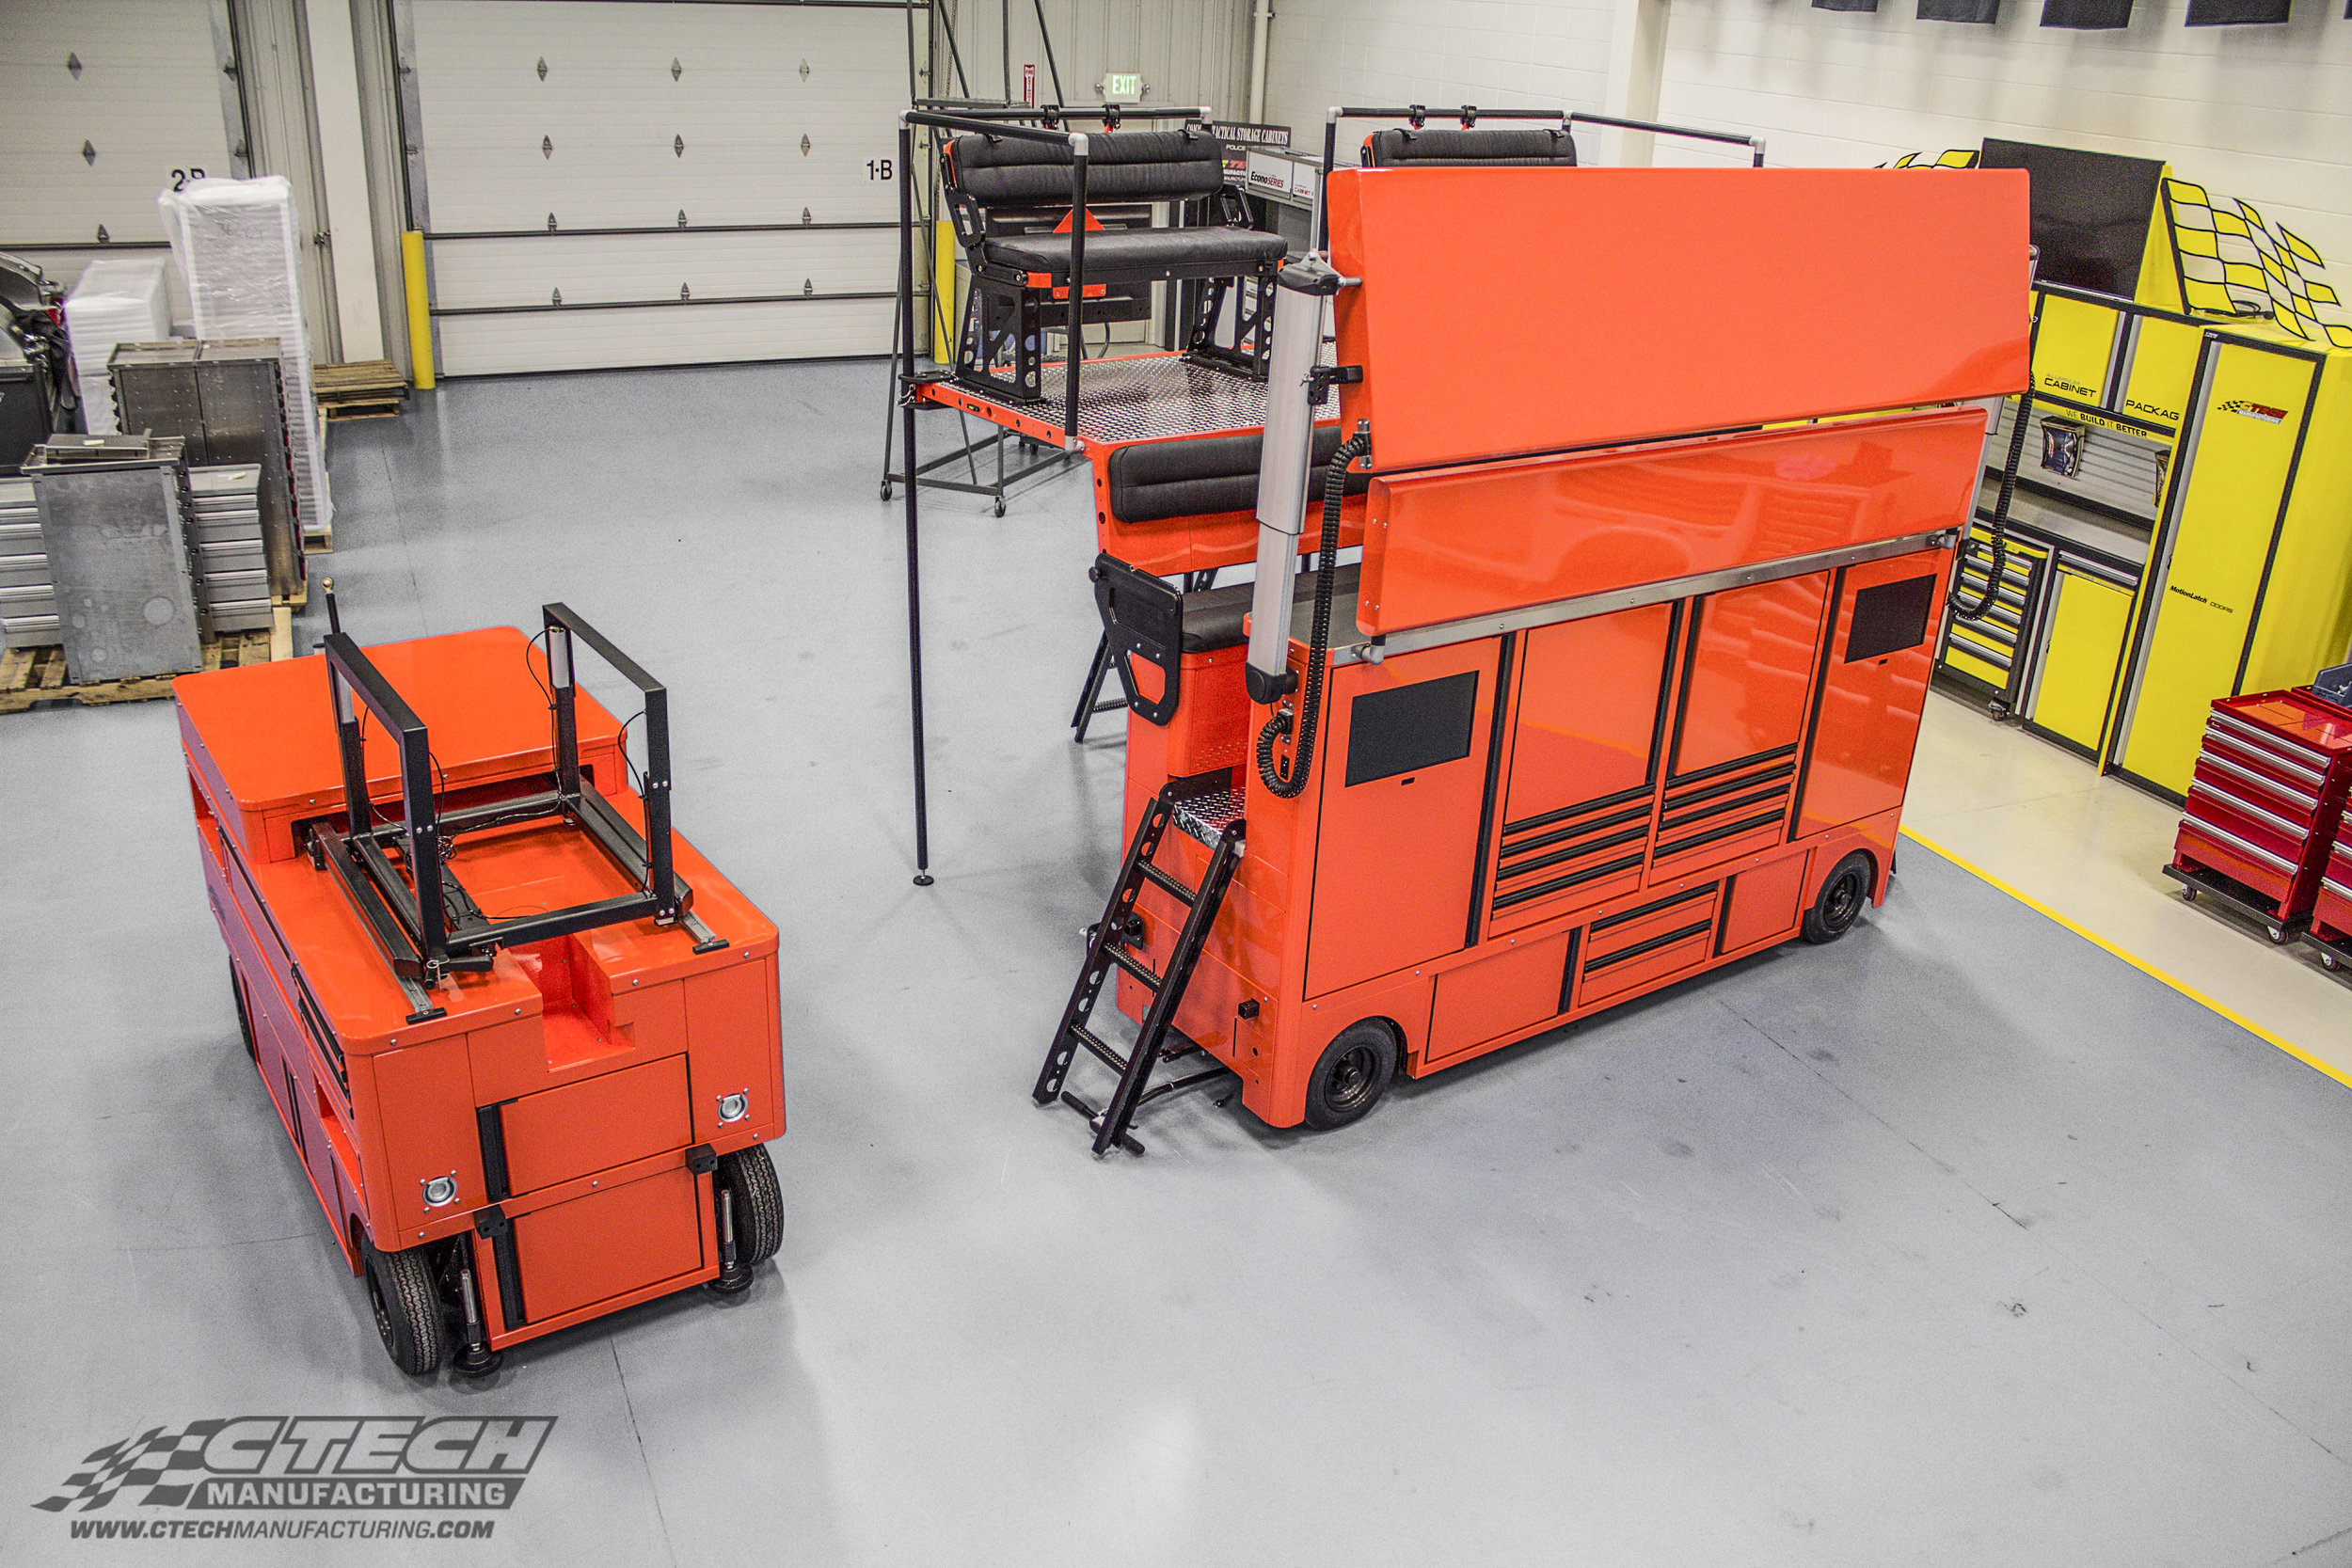 Nobody does pit-lane storage better than CTECH. Ultra and Fuel Carts, pictured here, are must-haves for serious endurance racing teams that rely on efficient teamwork when it matters most.